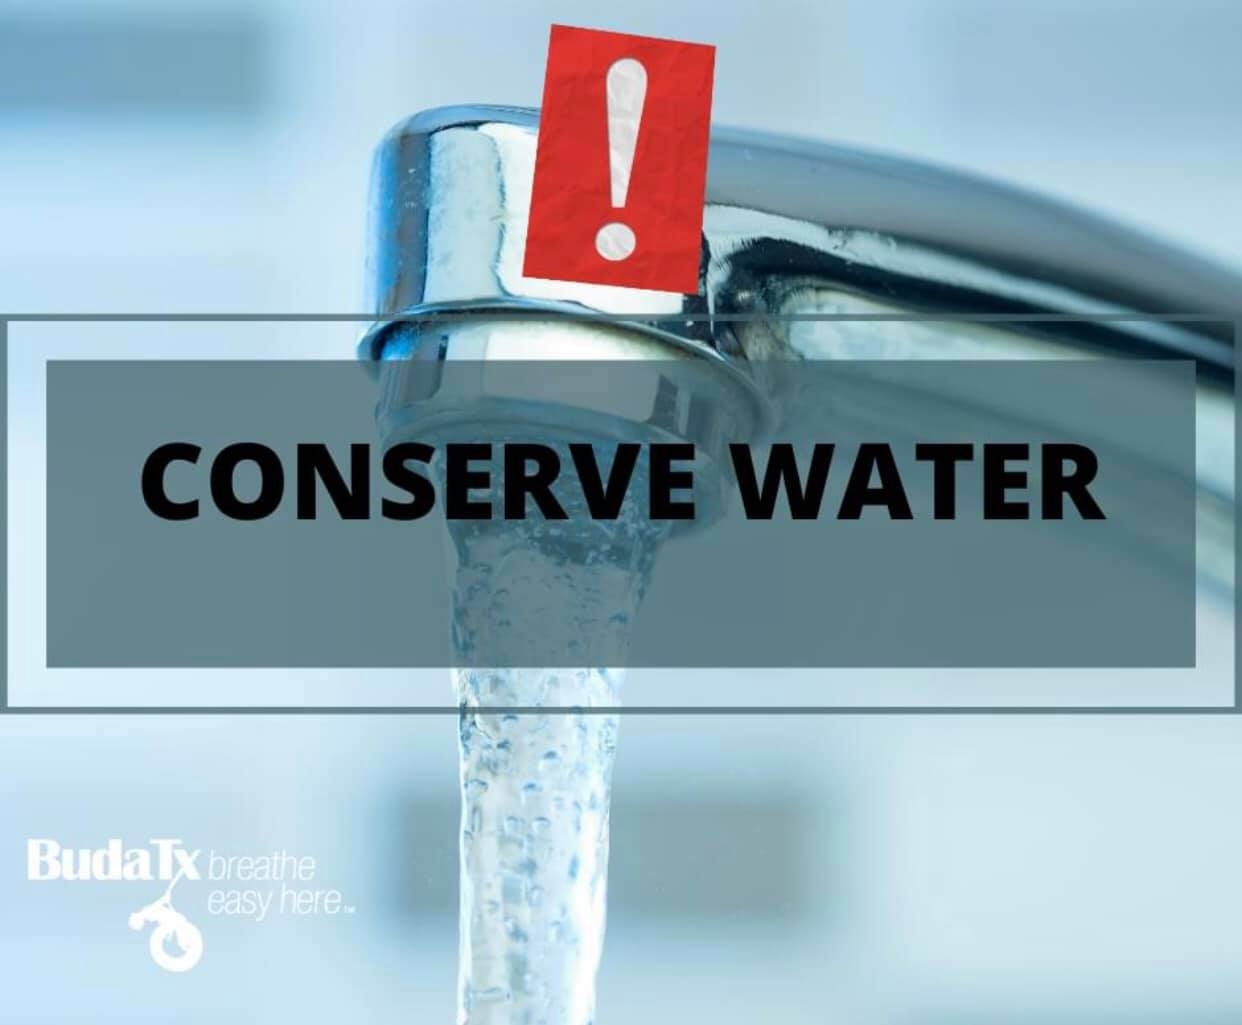 conserve water buda